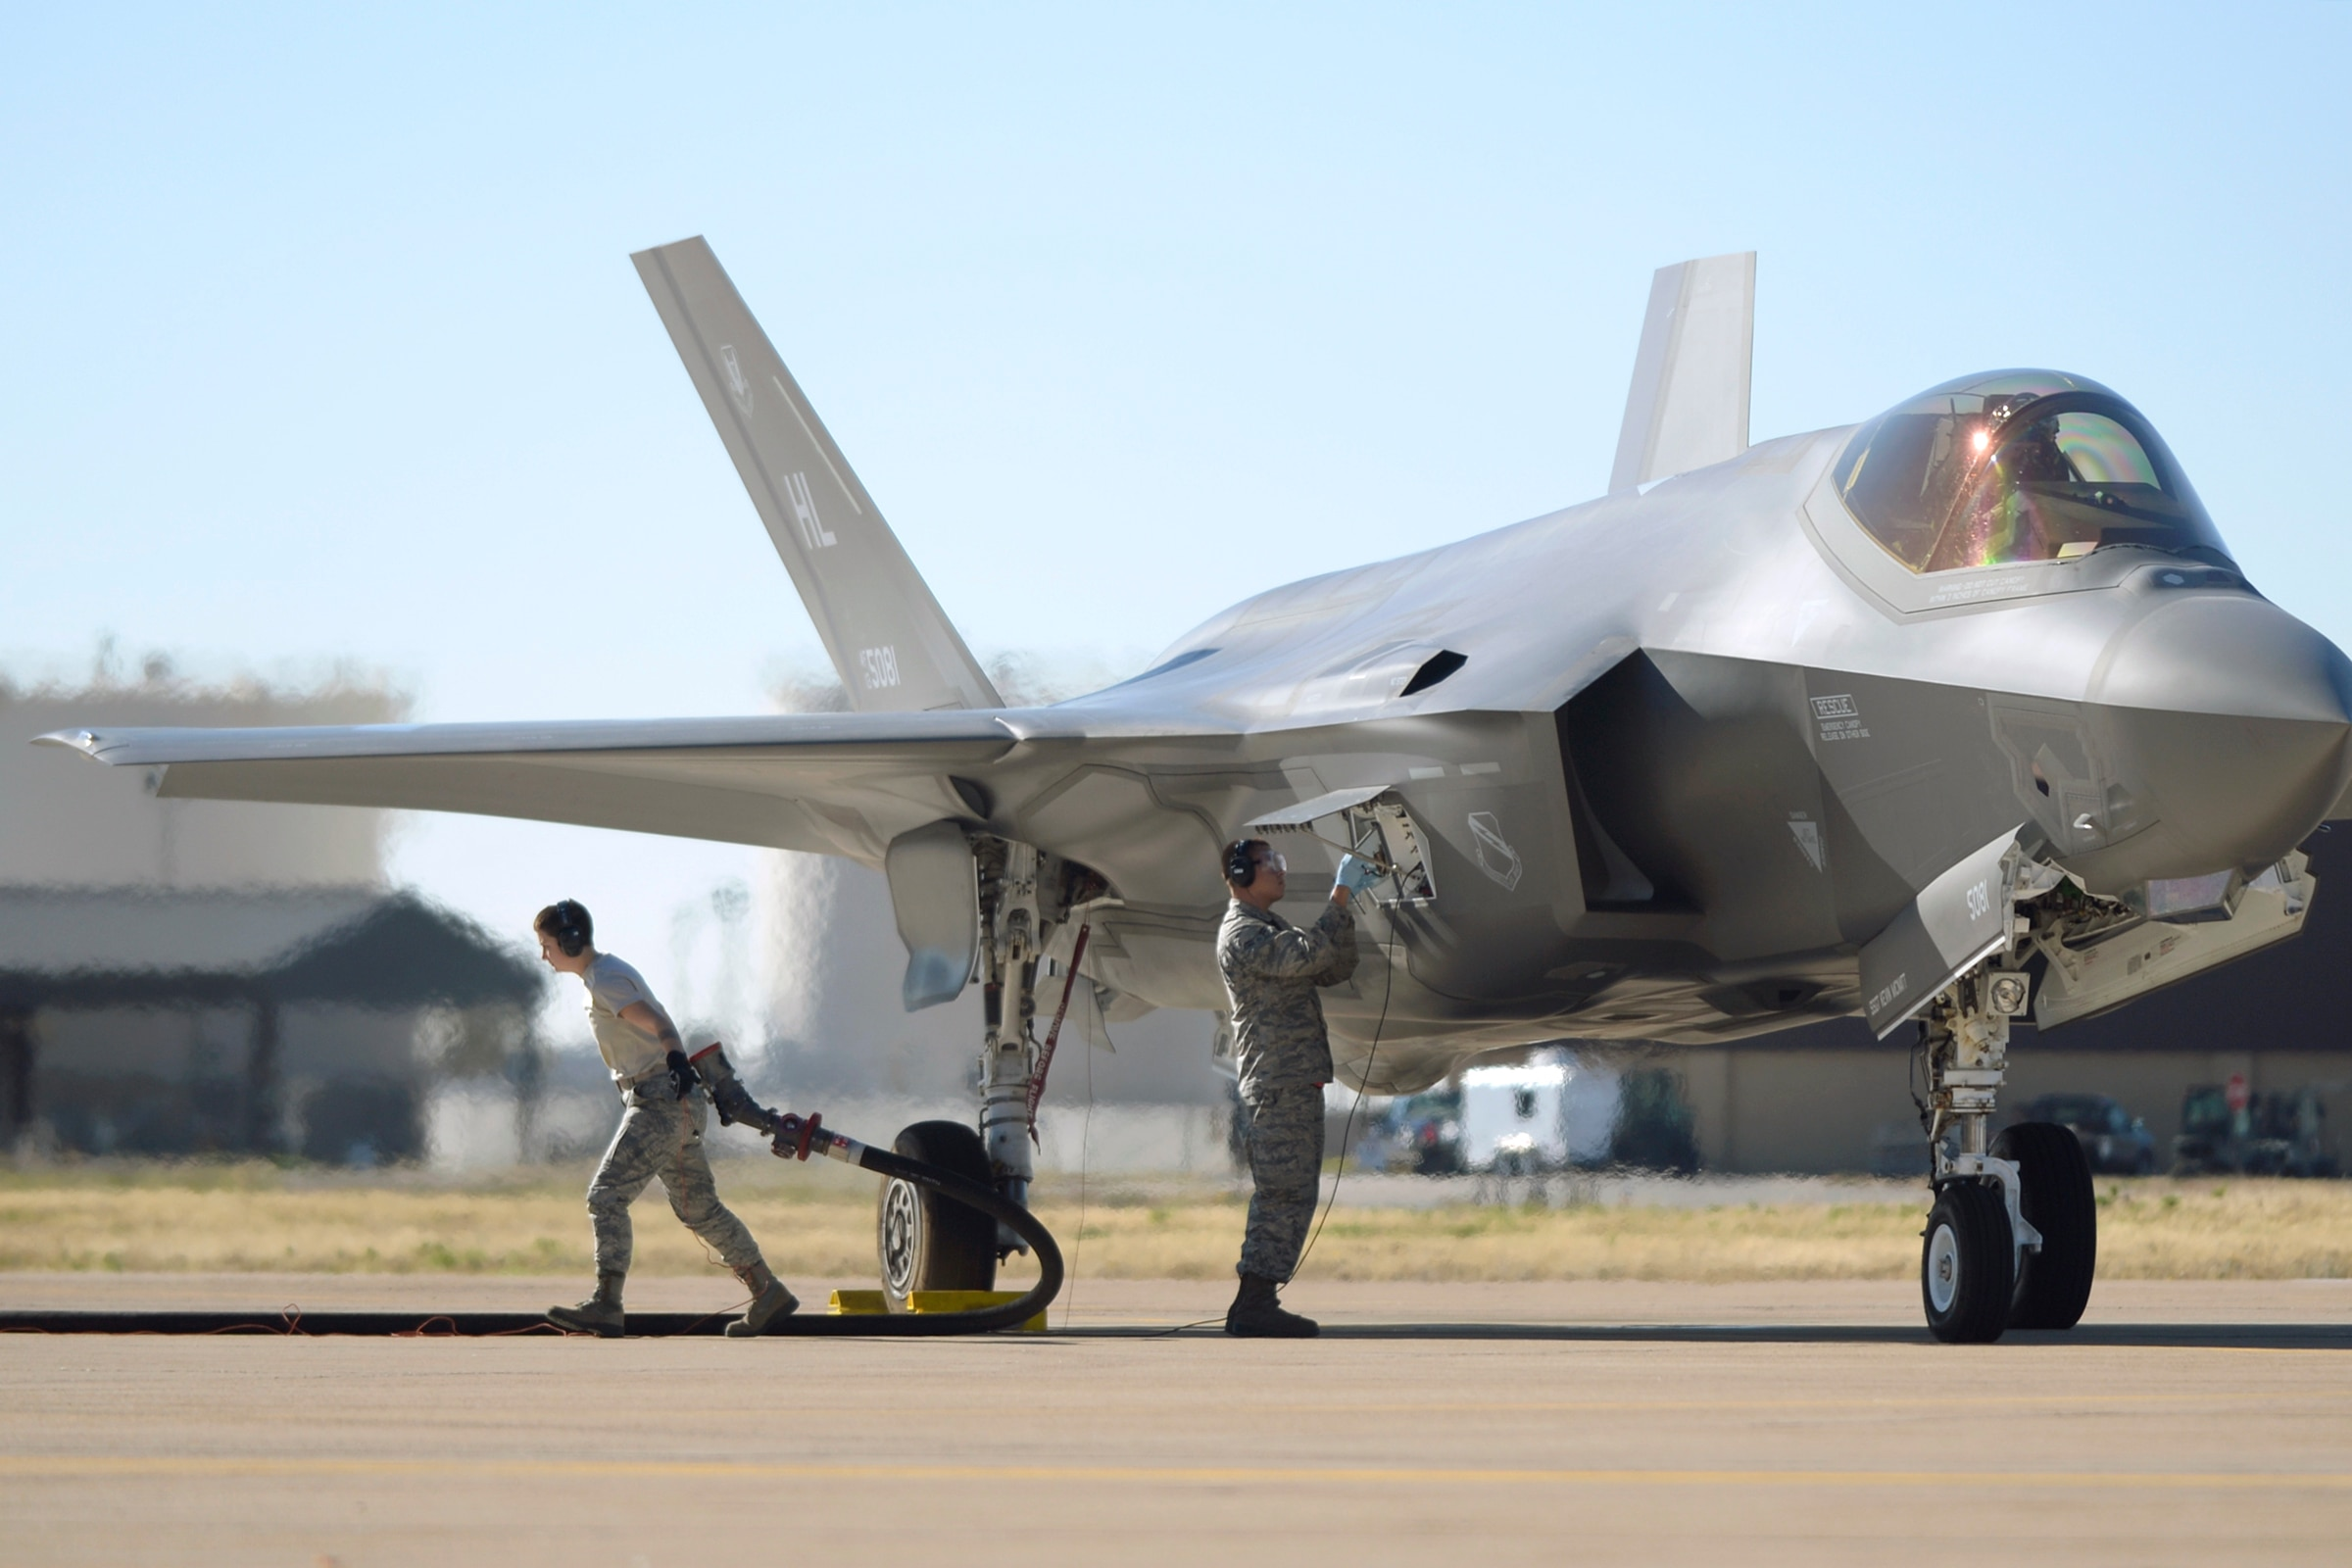 Raytheon pushes GBU-49 as quick fix to give F-35 ability to hit moving targets